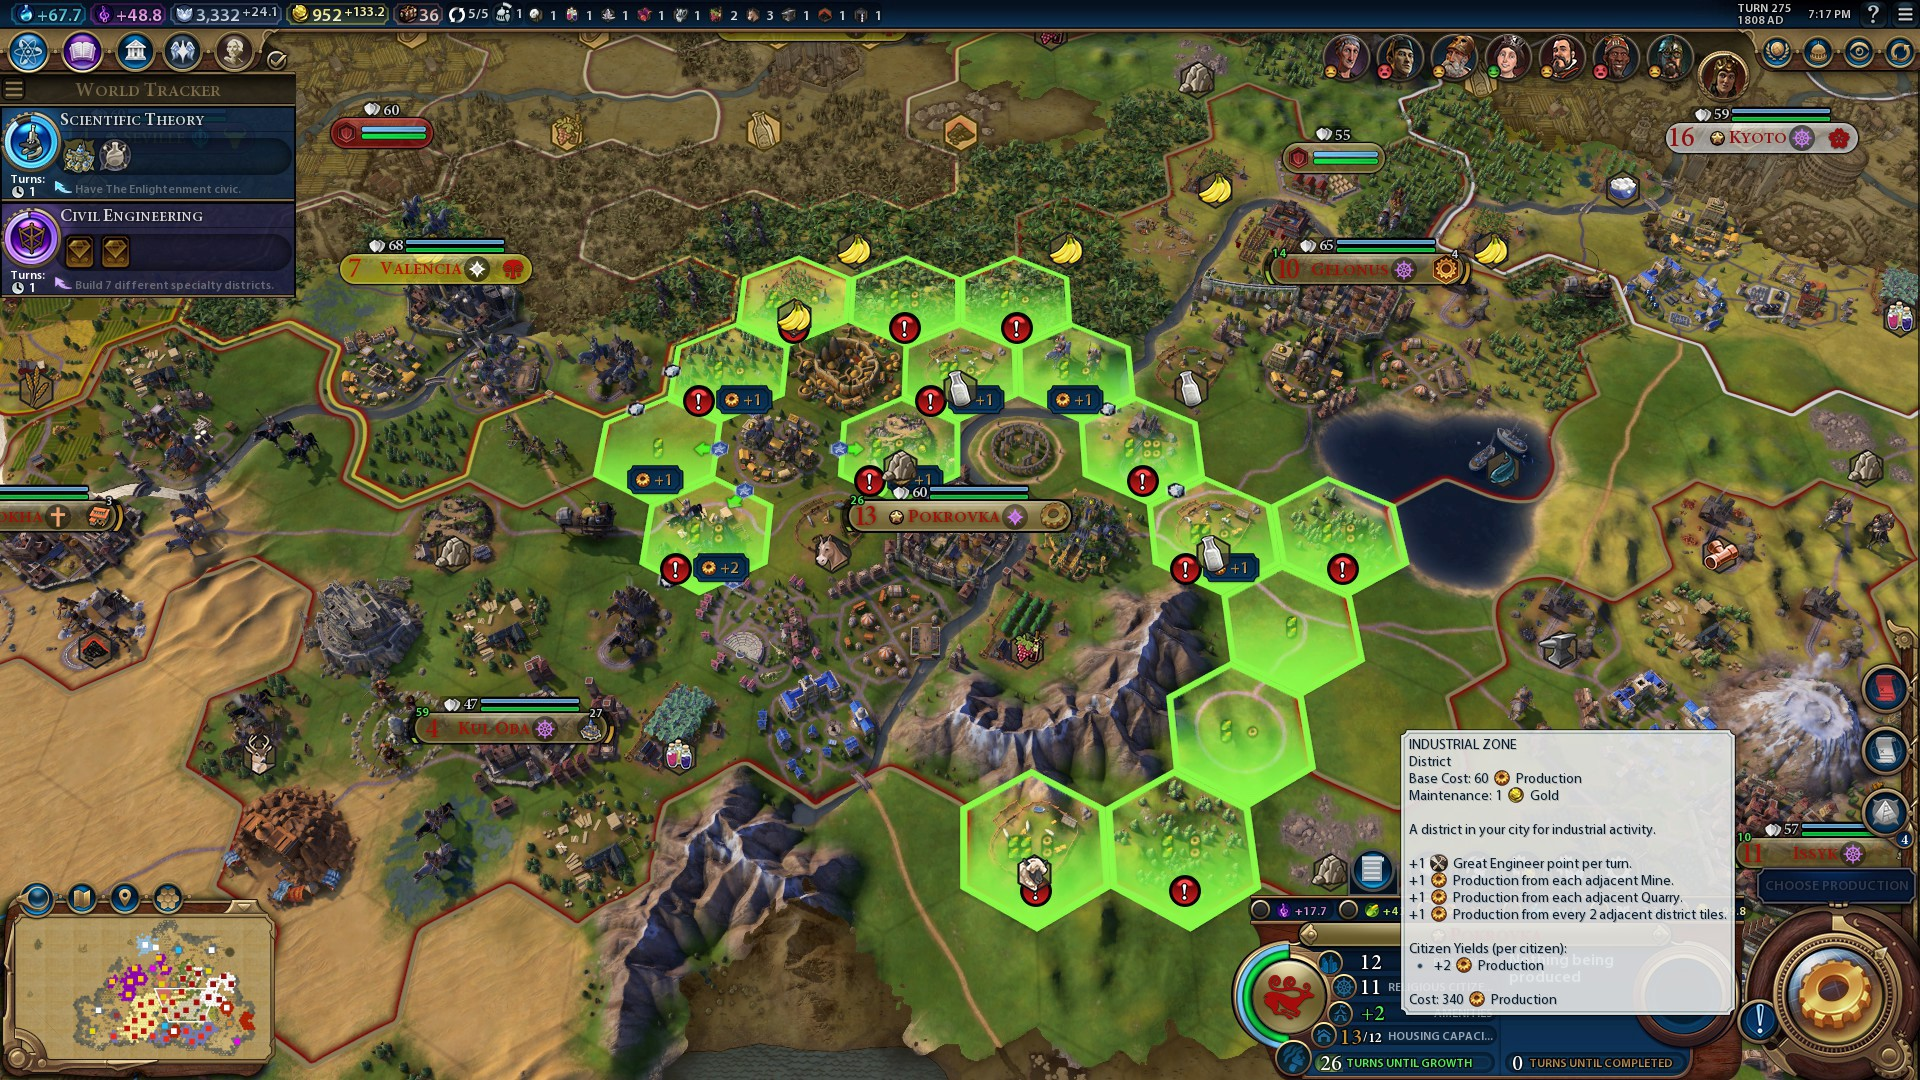 Civilization VI Builds on the Core Values of Civilization V